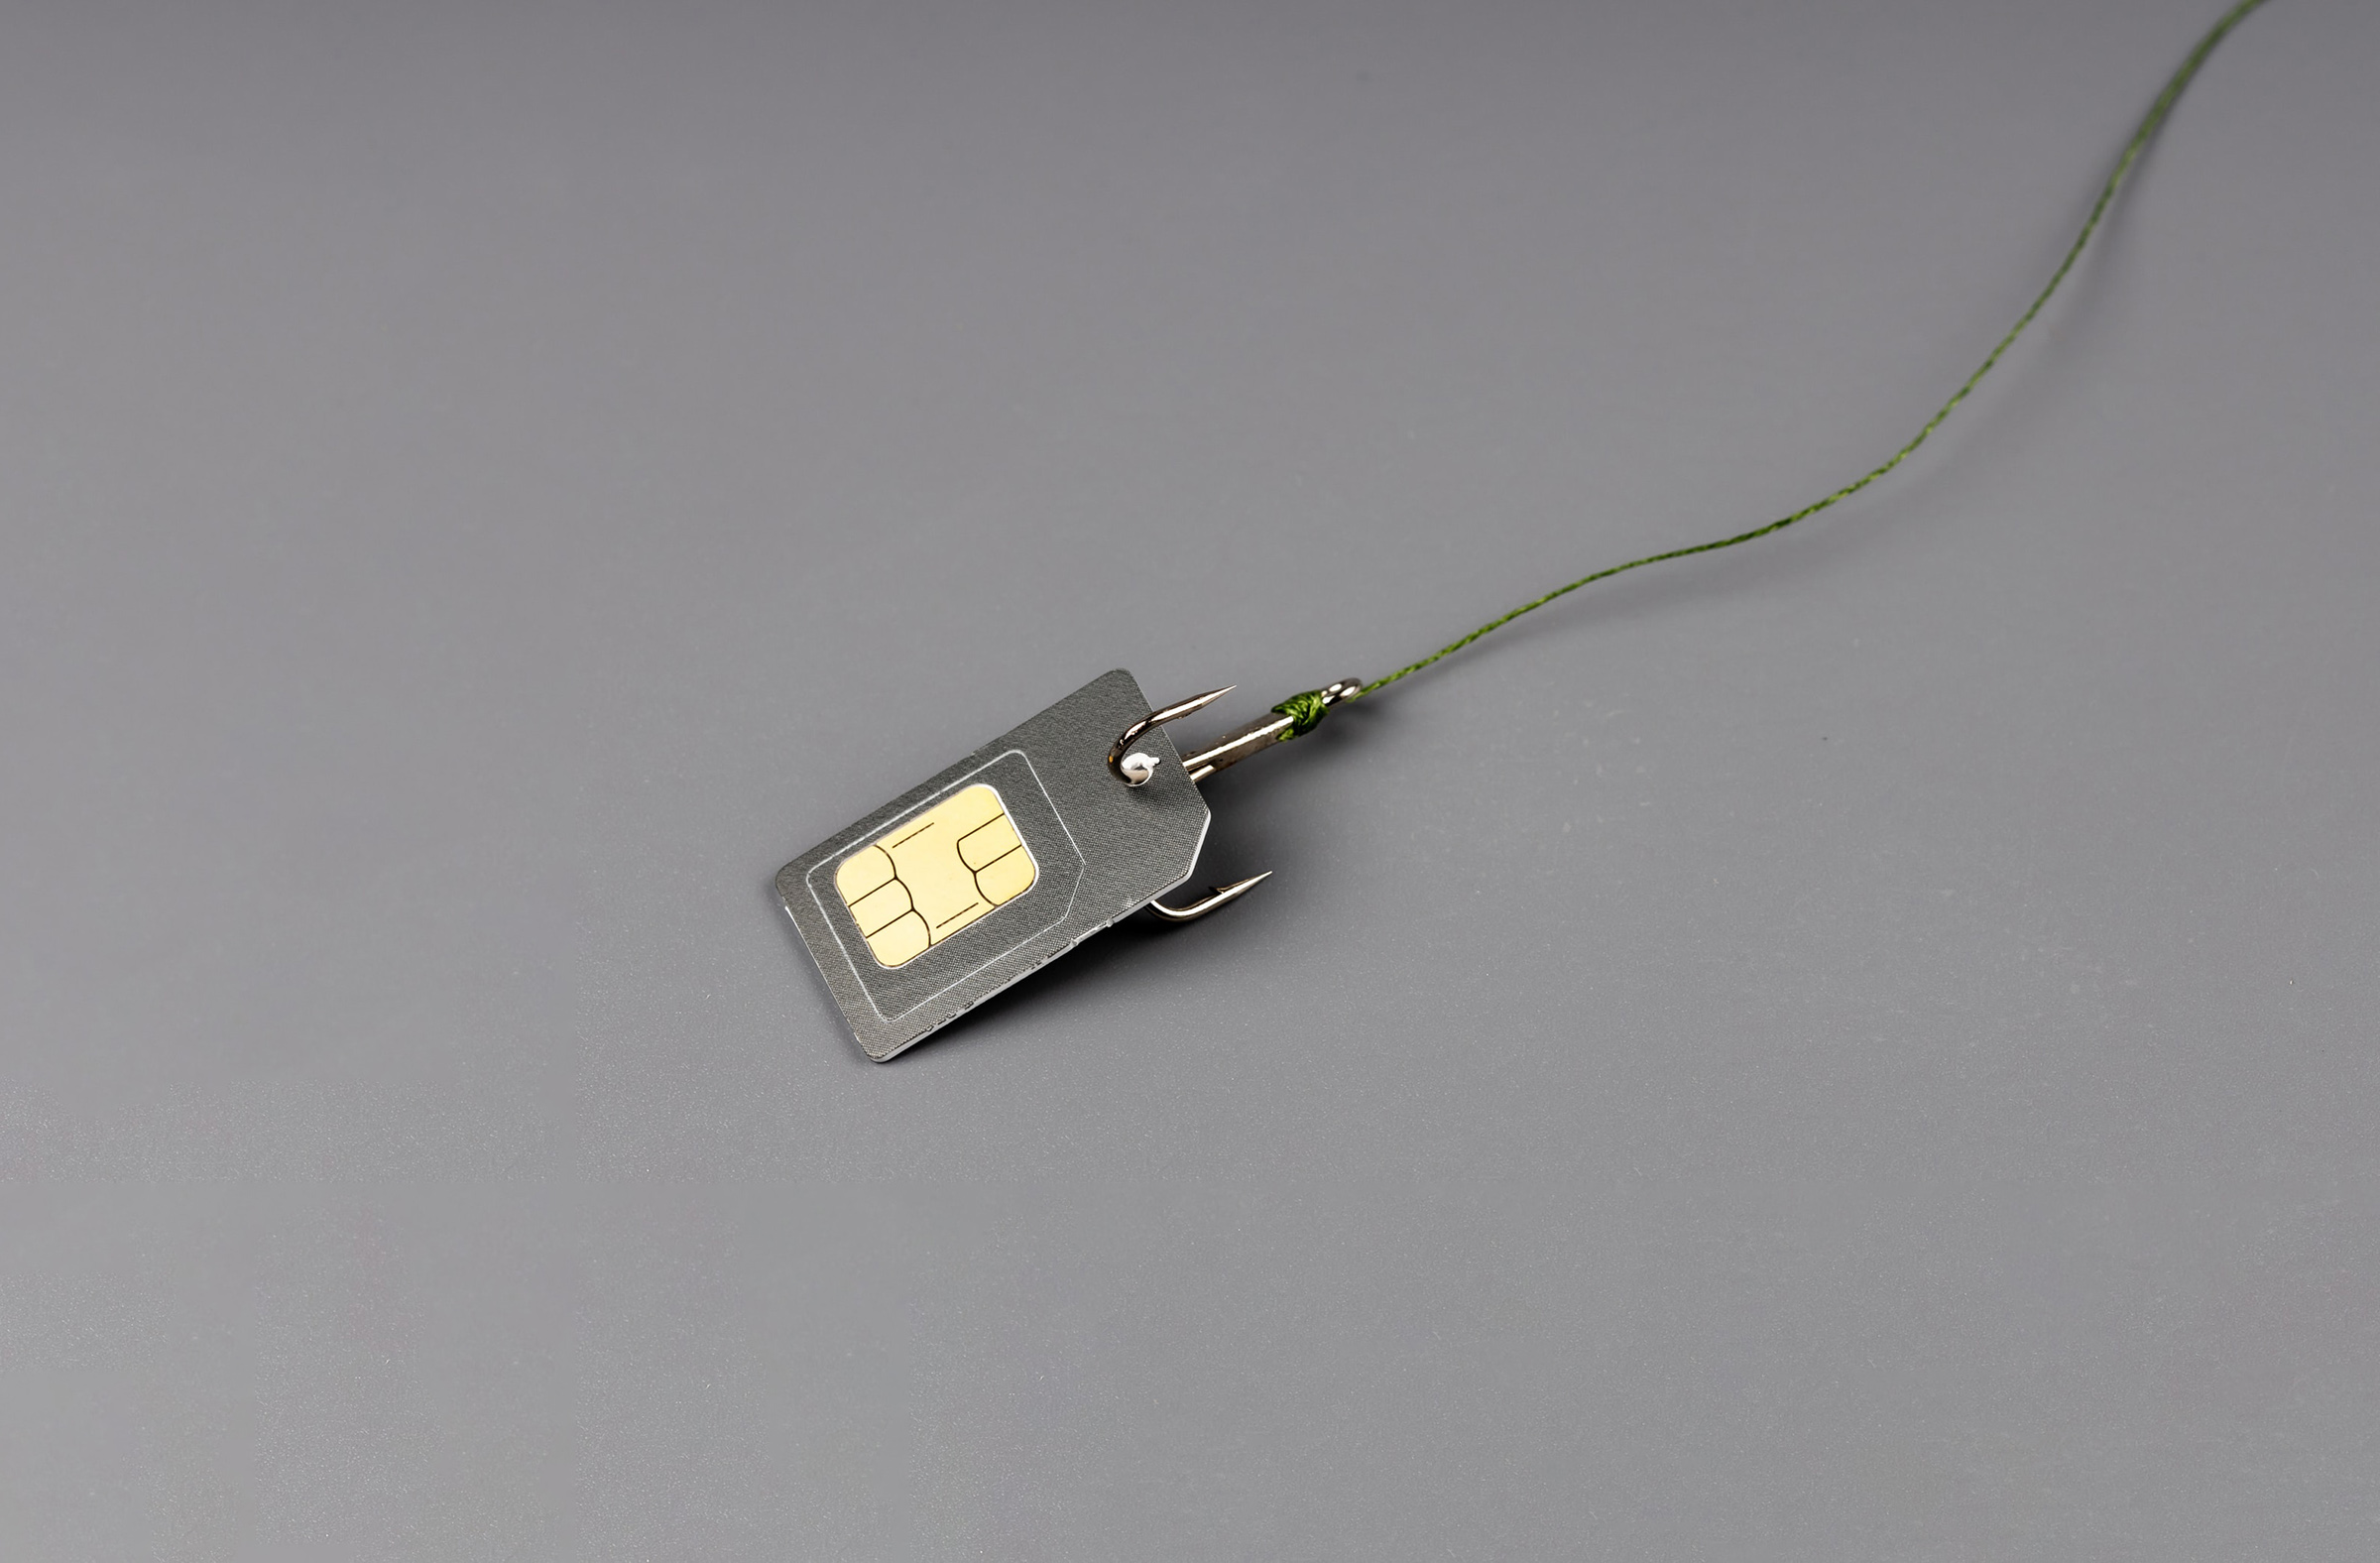 SIM card for the phone is strung on a hook, companies deceive subscribers